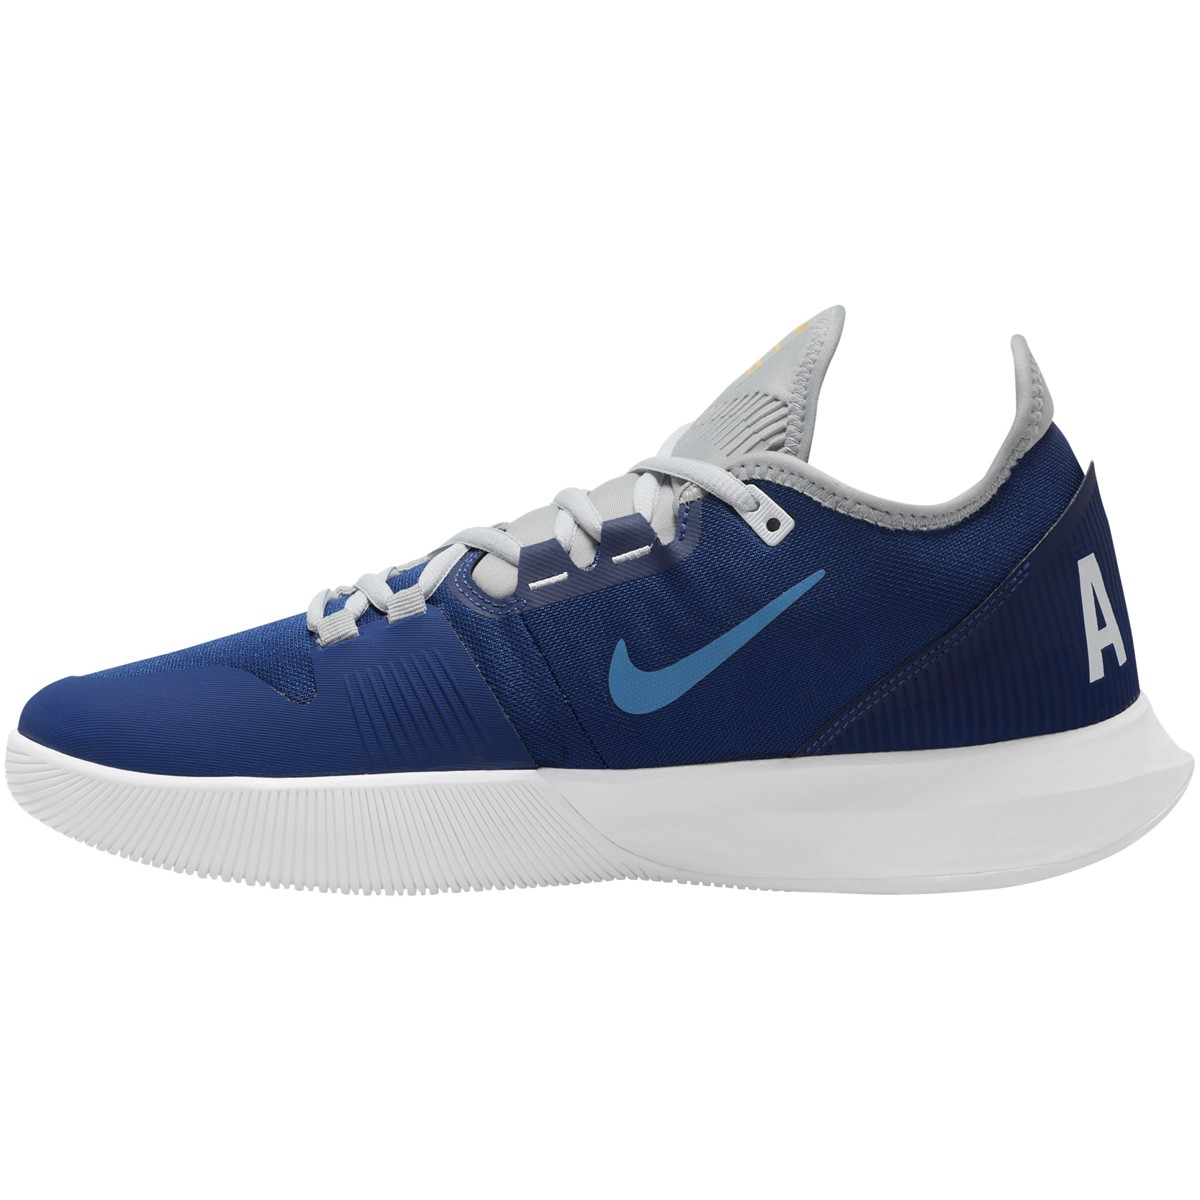 CHAUSSURES NIKE AIR MAX WILDCARD TOUTES SURFACES - NIKE - Homme ...